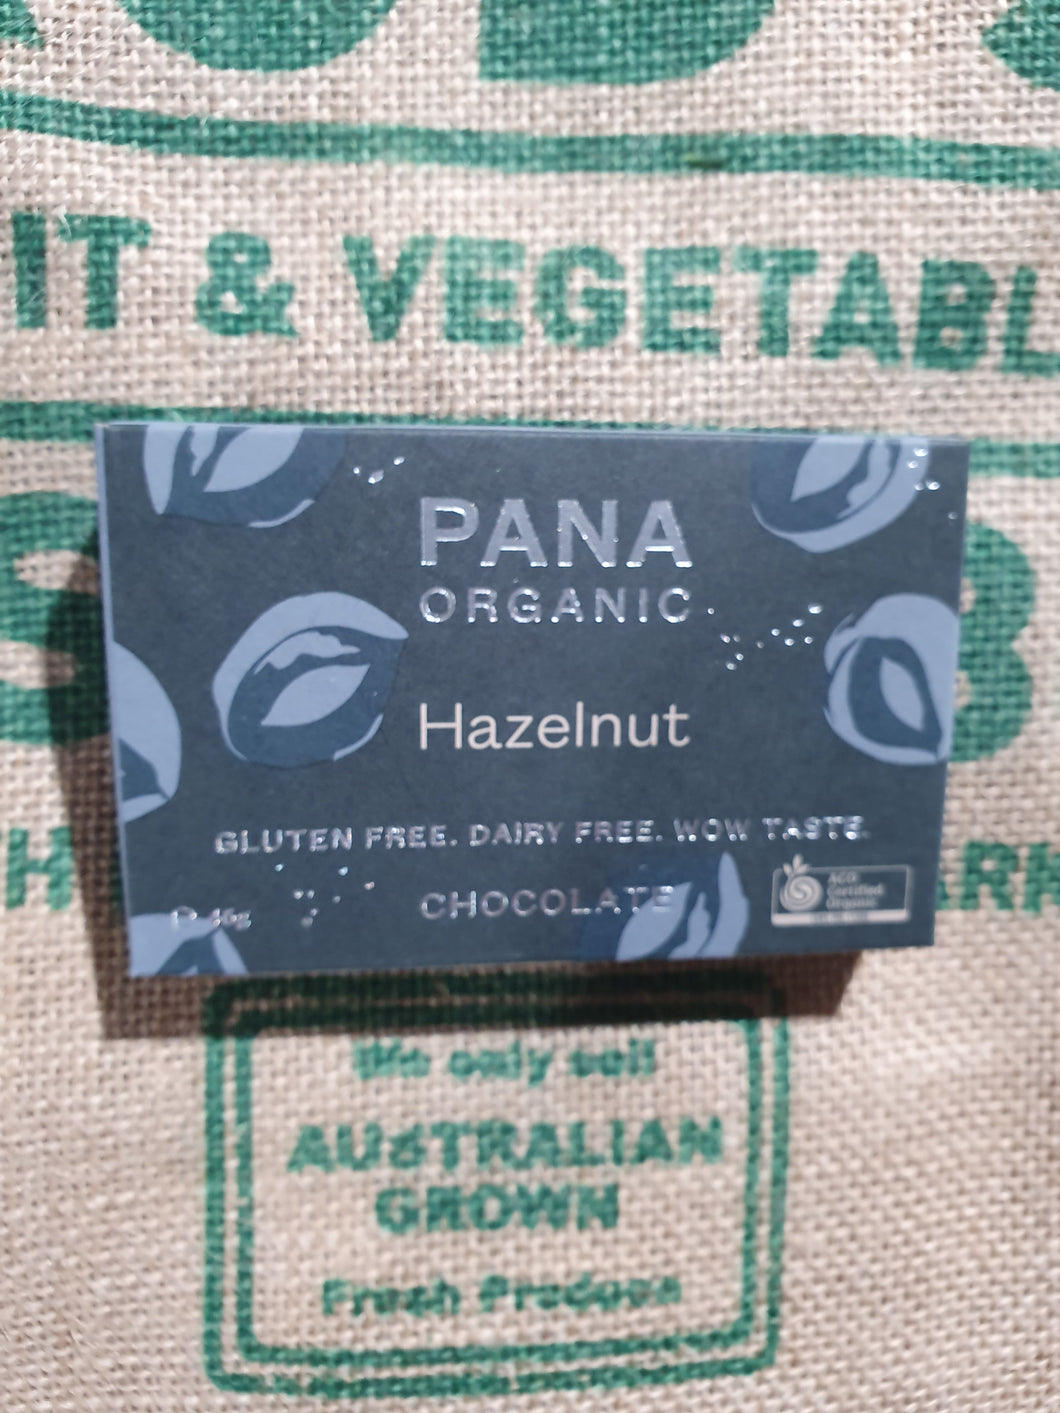 PANA ORGANIC HAZELNUT CHOCOLATE 46g